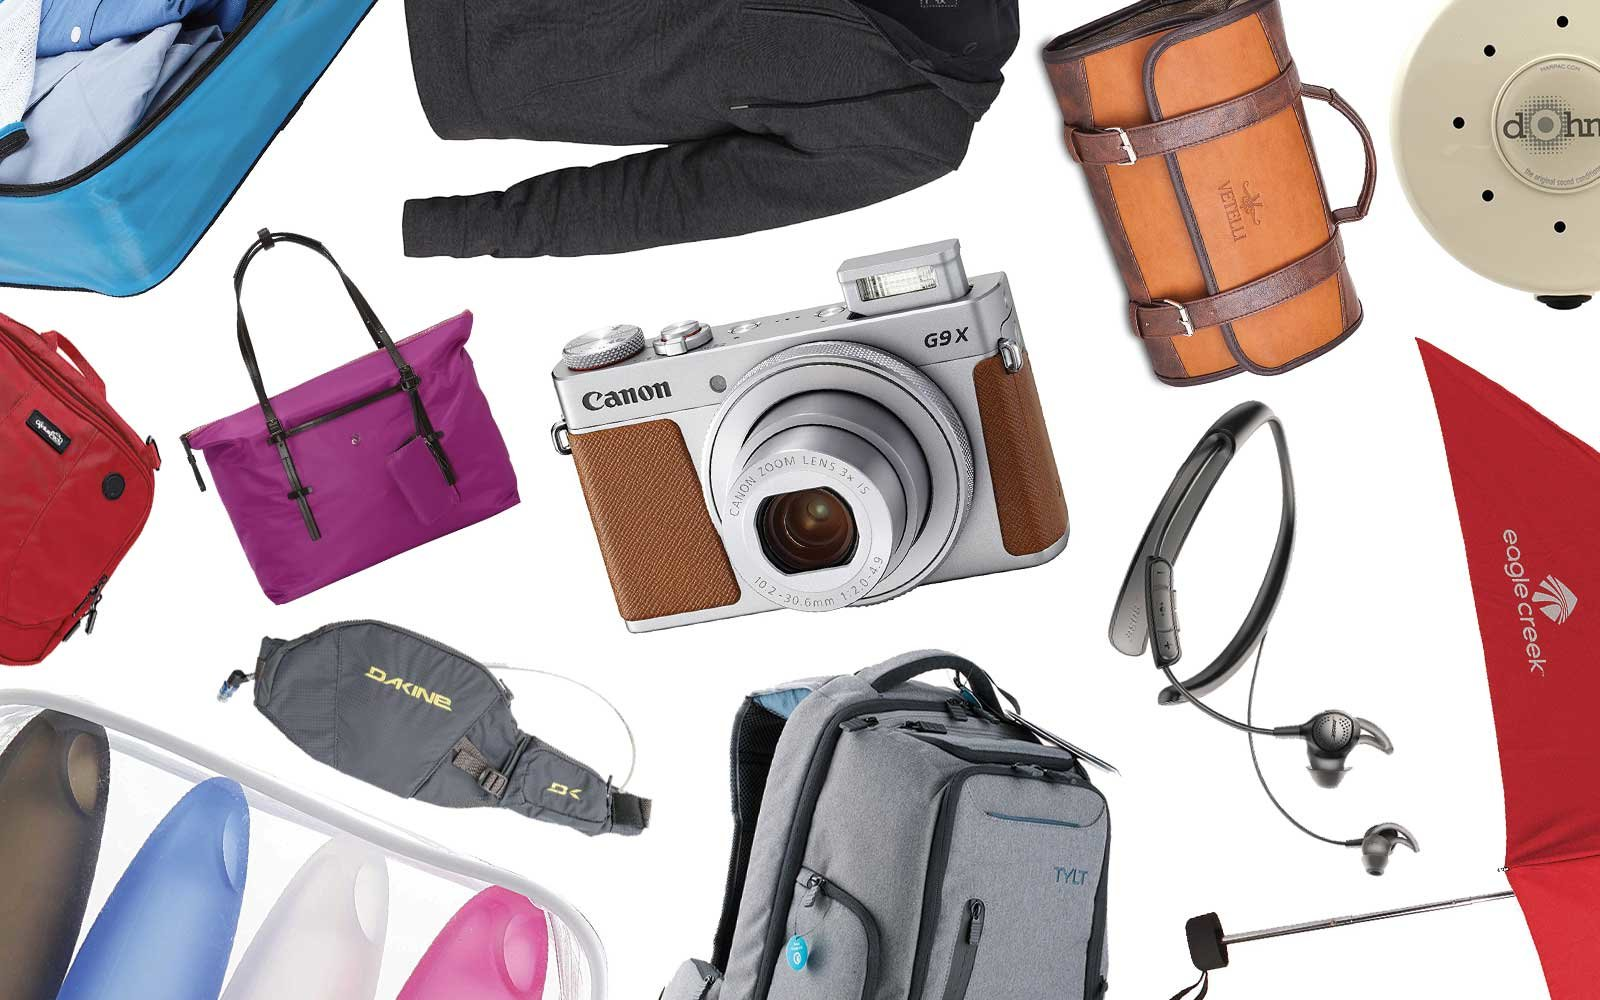 Discussion on this topic: Check out our other travel gear buying , check-out-our-other-travel-gear-buying/